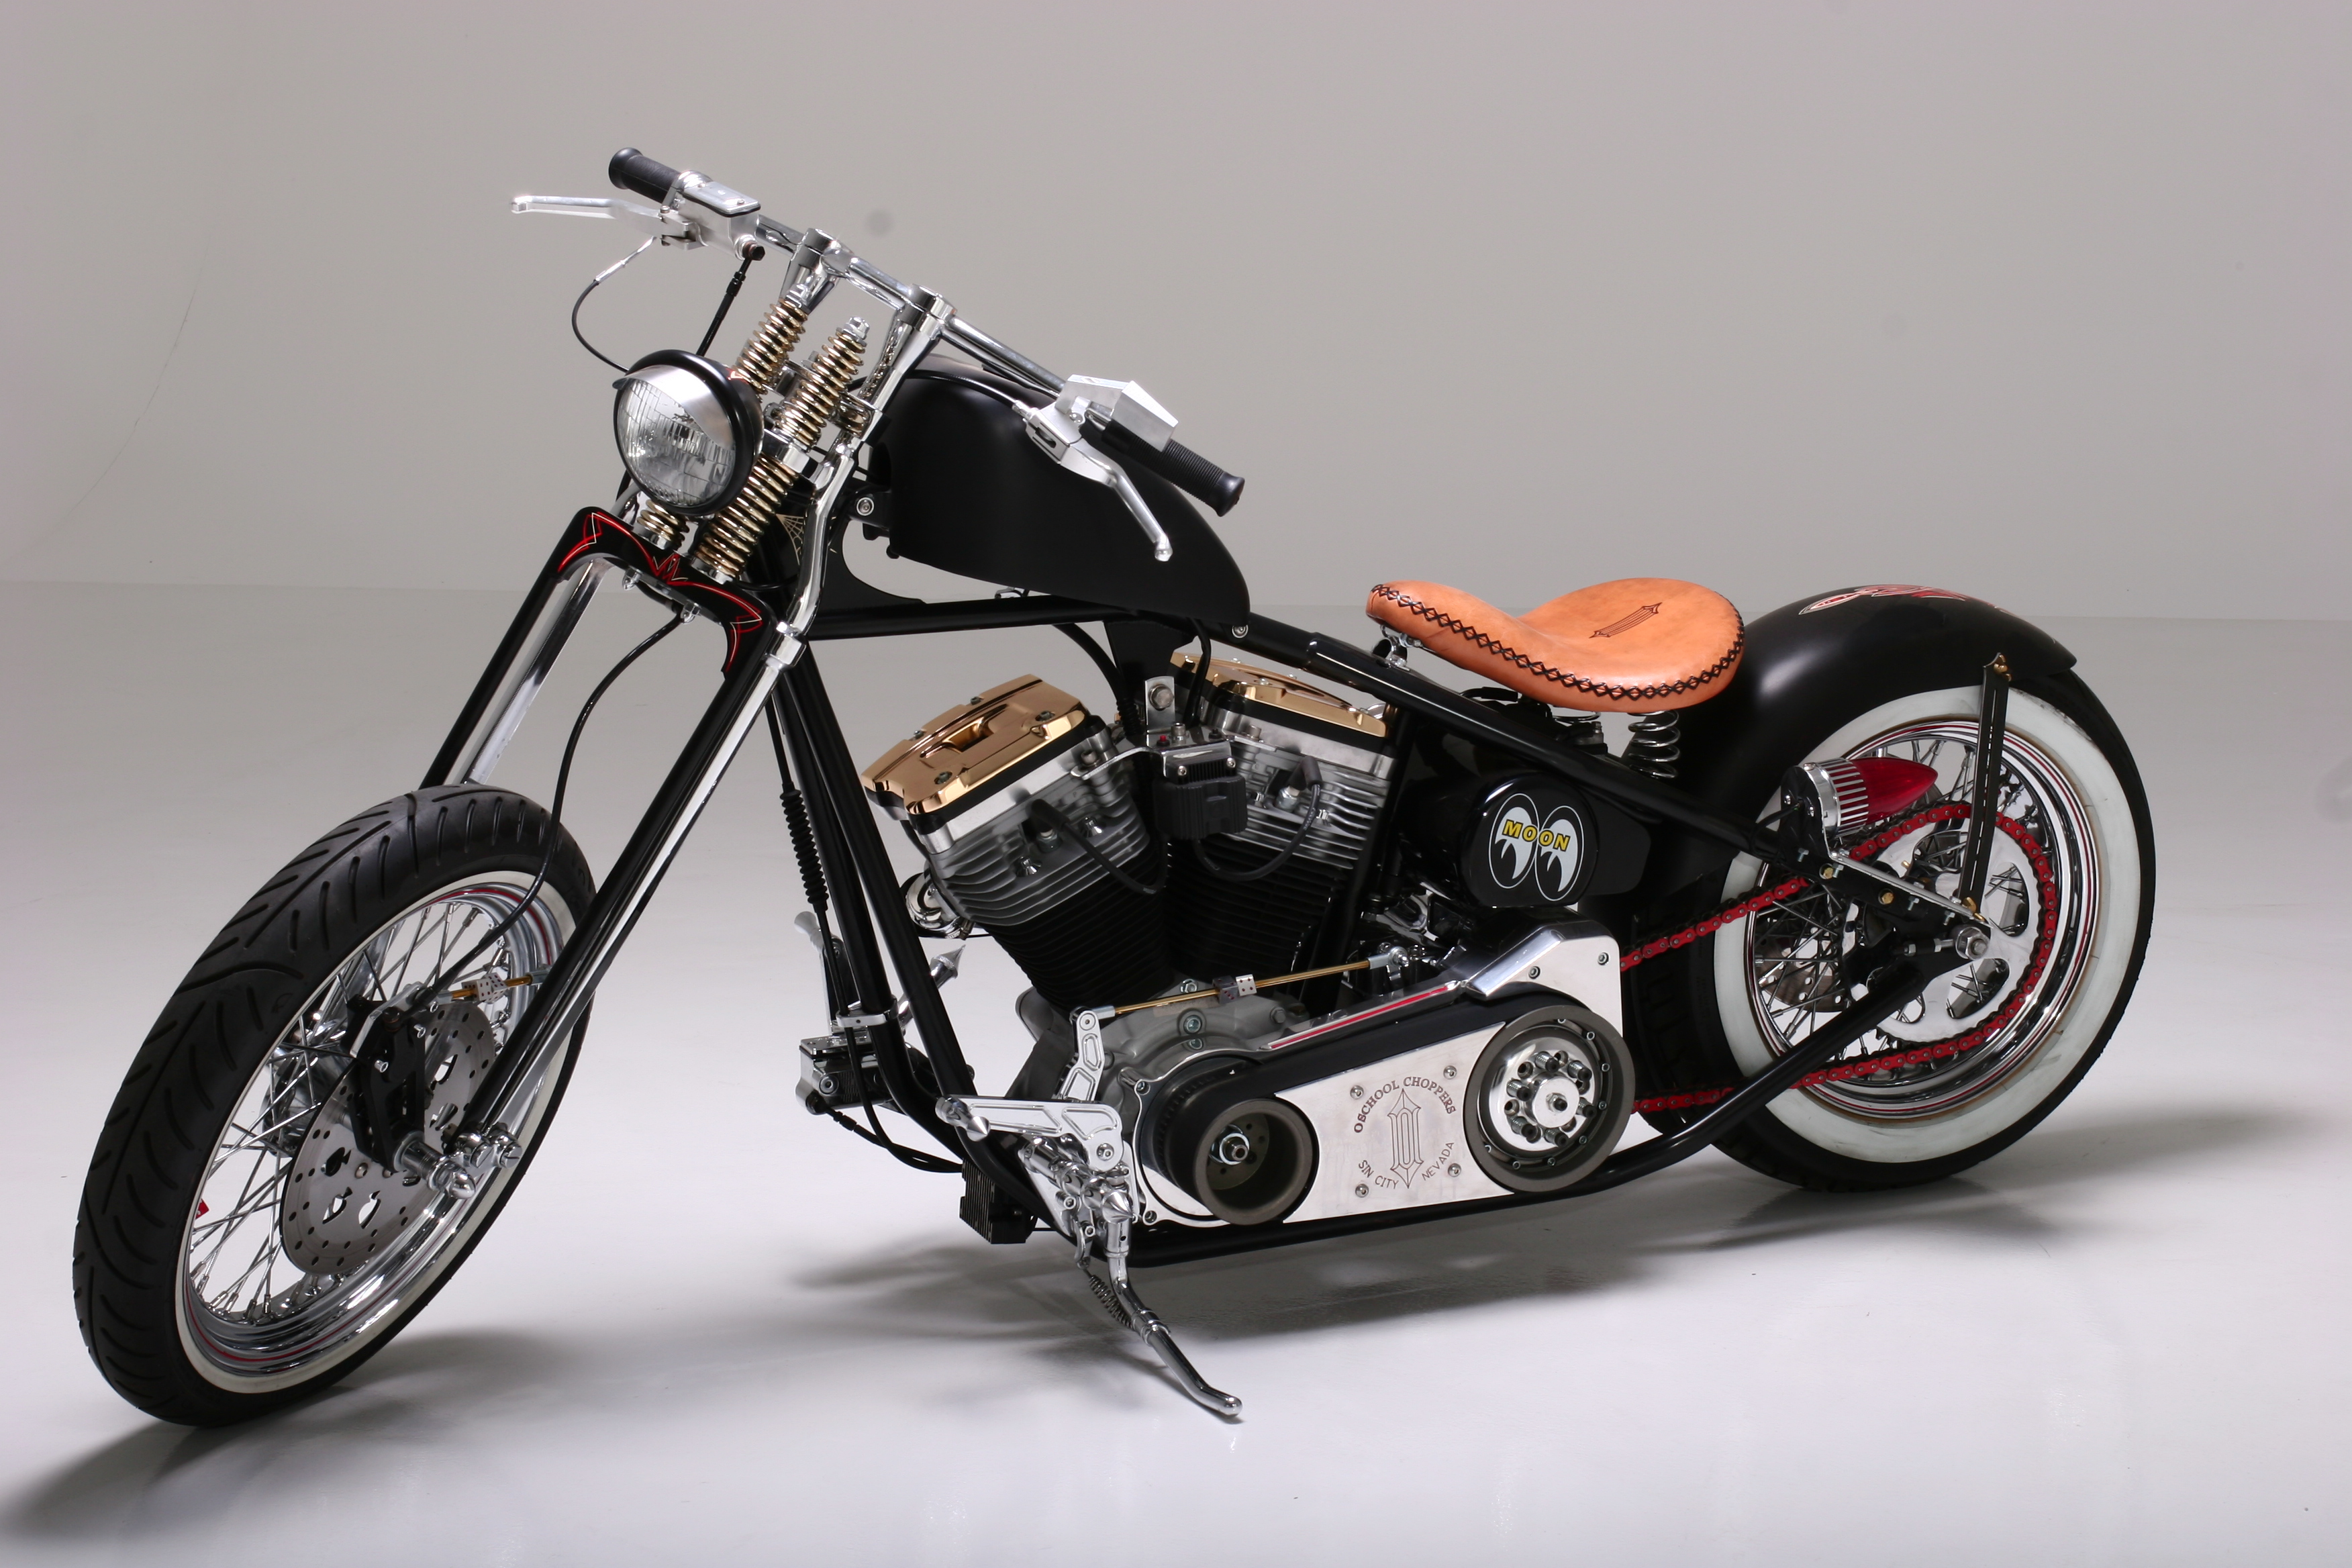 50 chicks and choppers free wallpaper on wallpapersafari - Old school harley davidson wallpaper ...